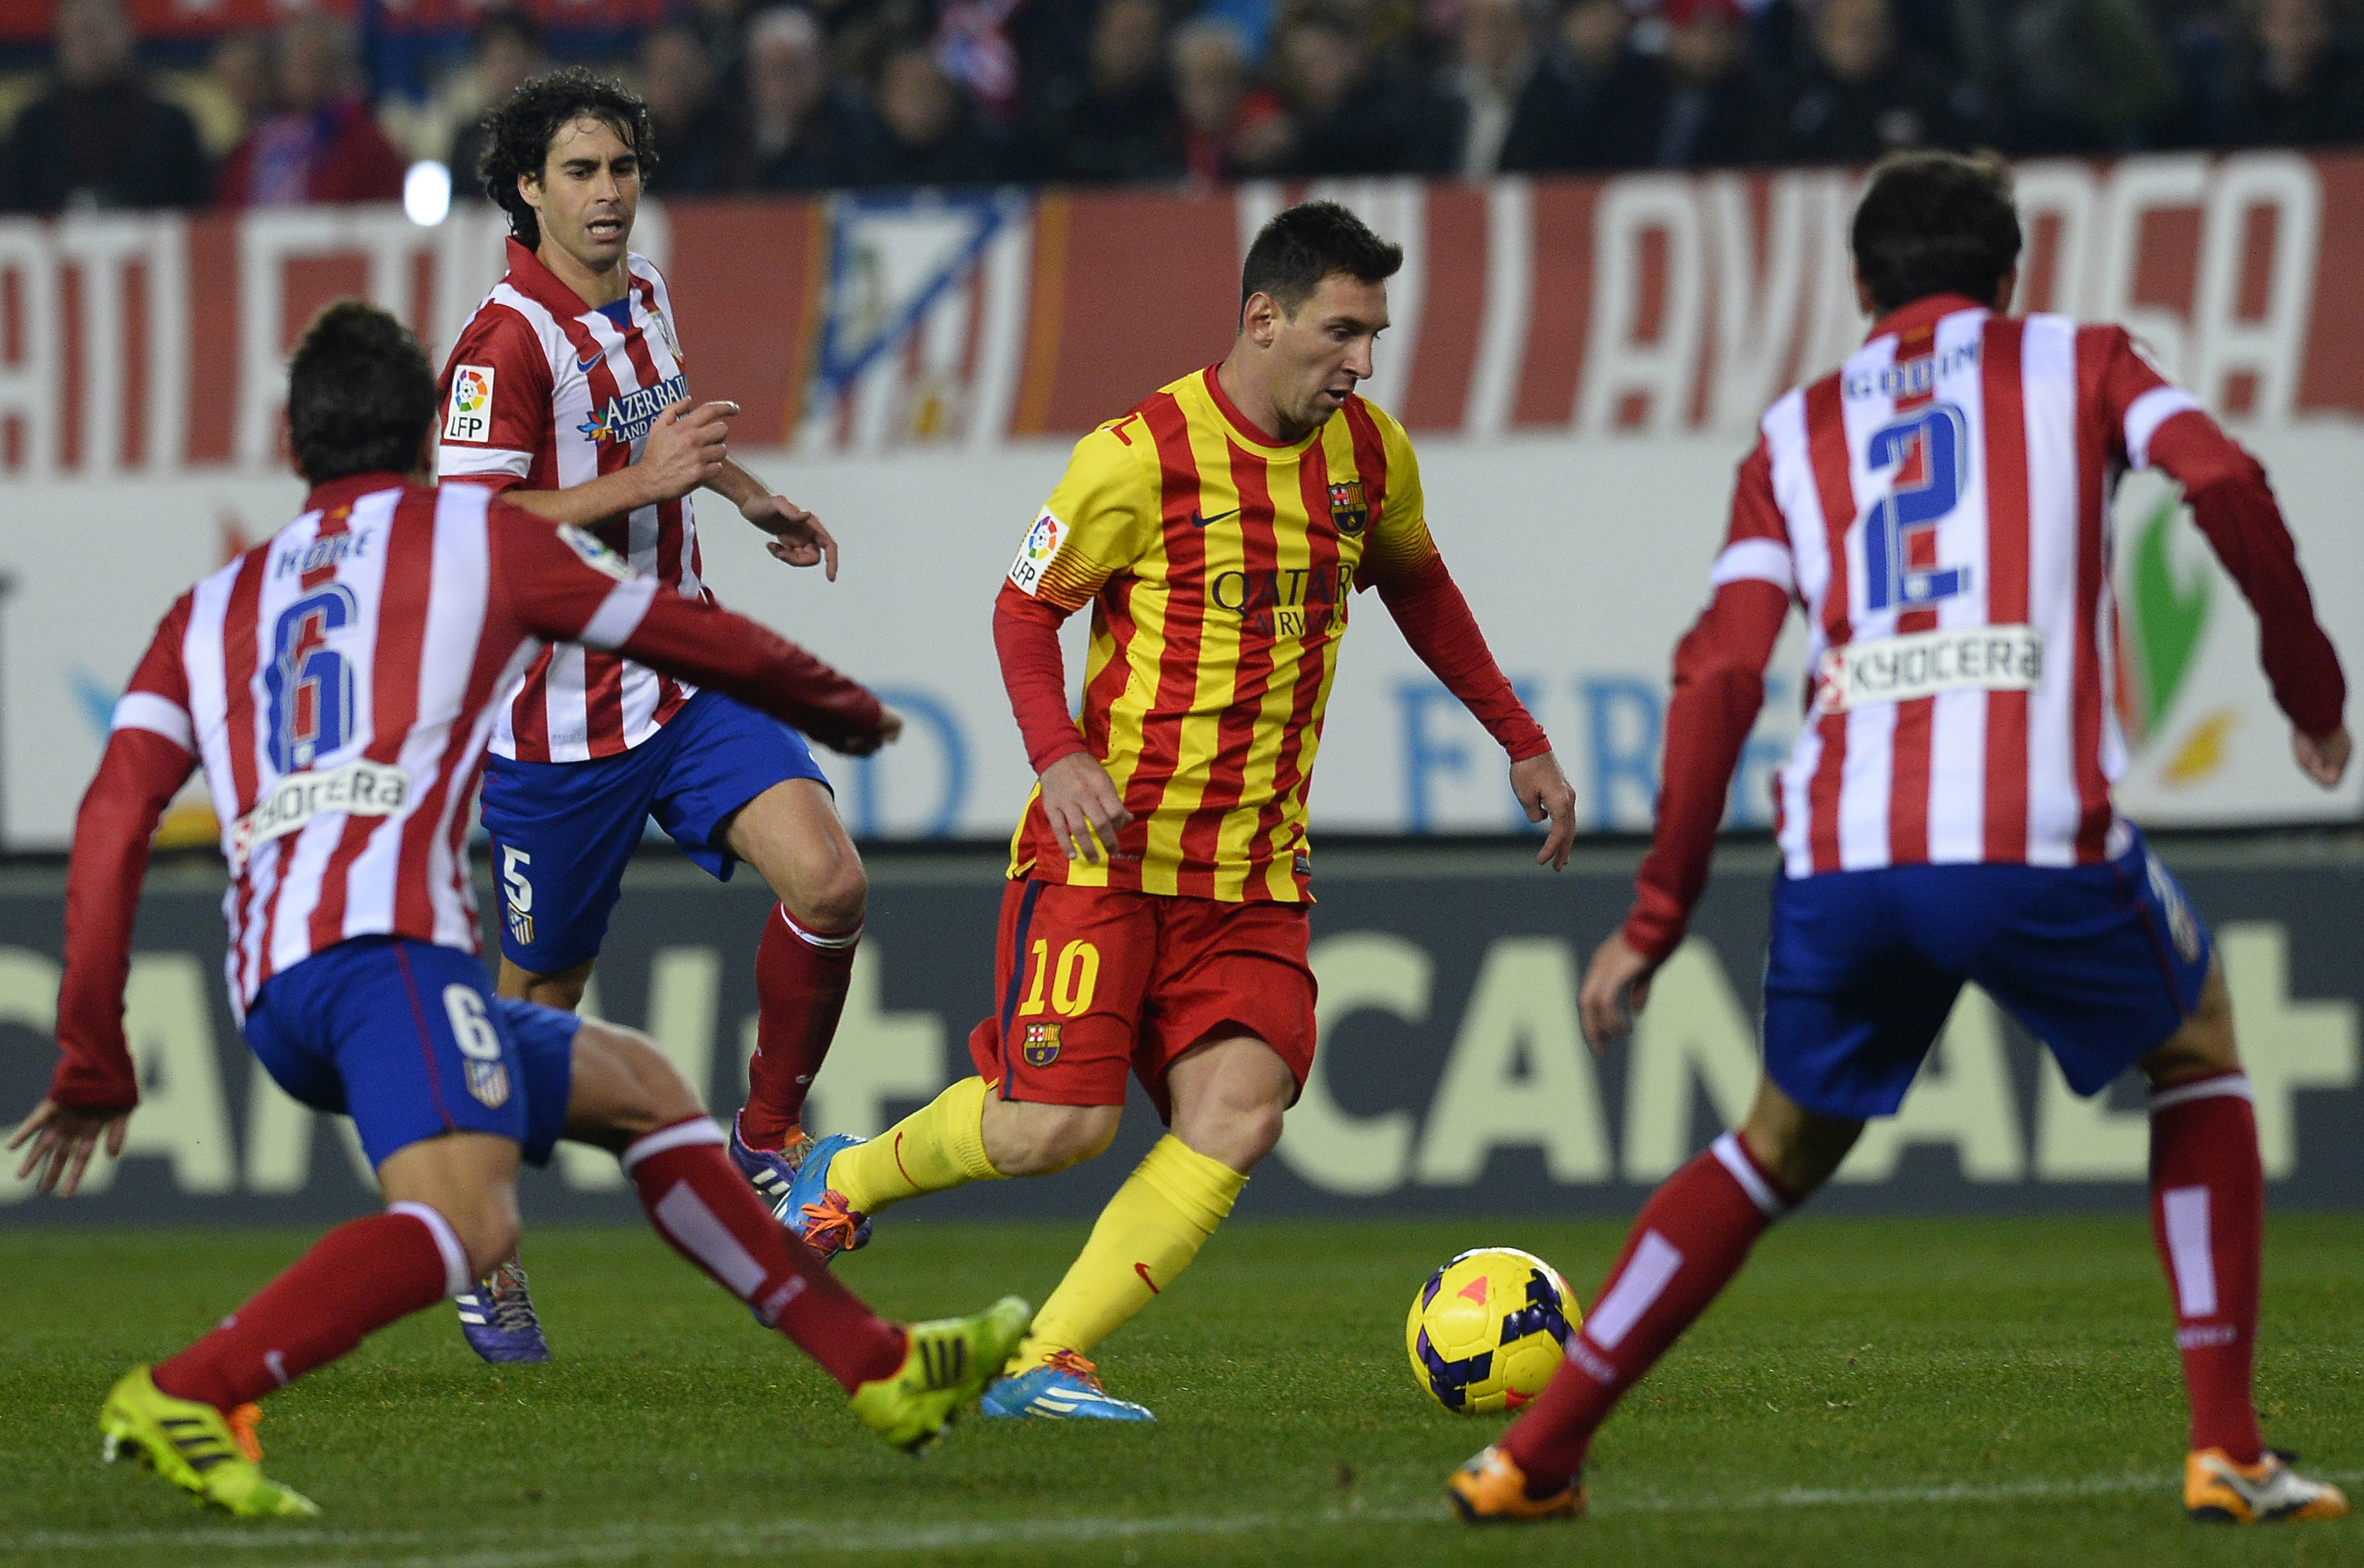 Barcelona's Argentinian forward Lionel Messi (2ndR) vies with Atletico Madrid's Portuguese midfielder Tiago Mendes (FarL) during the during the Spanish league football match Club Atletico de Madrid vs FC Barcelona at the Vicente Calderon stadium in Madrid on January 11, 2014.  AFP PHOTO/ GERARD JULIEN        (Photo credit should read GERARD JULIEN/AFP/Getty Images)